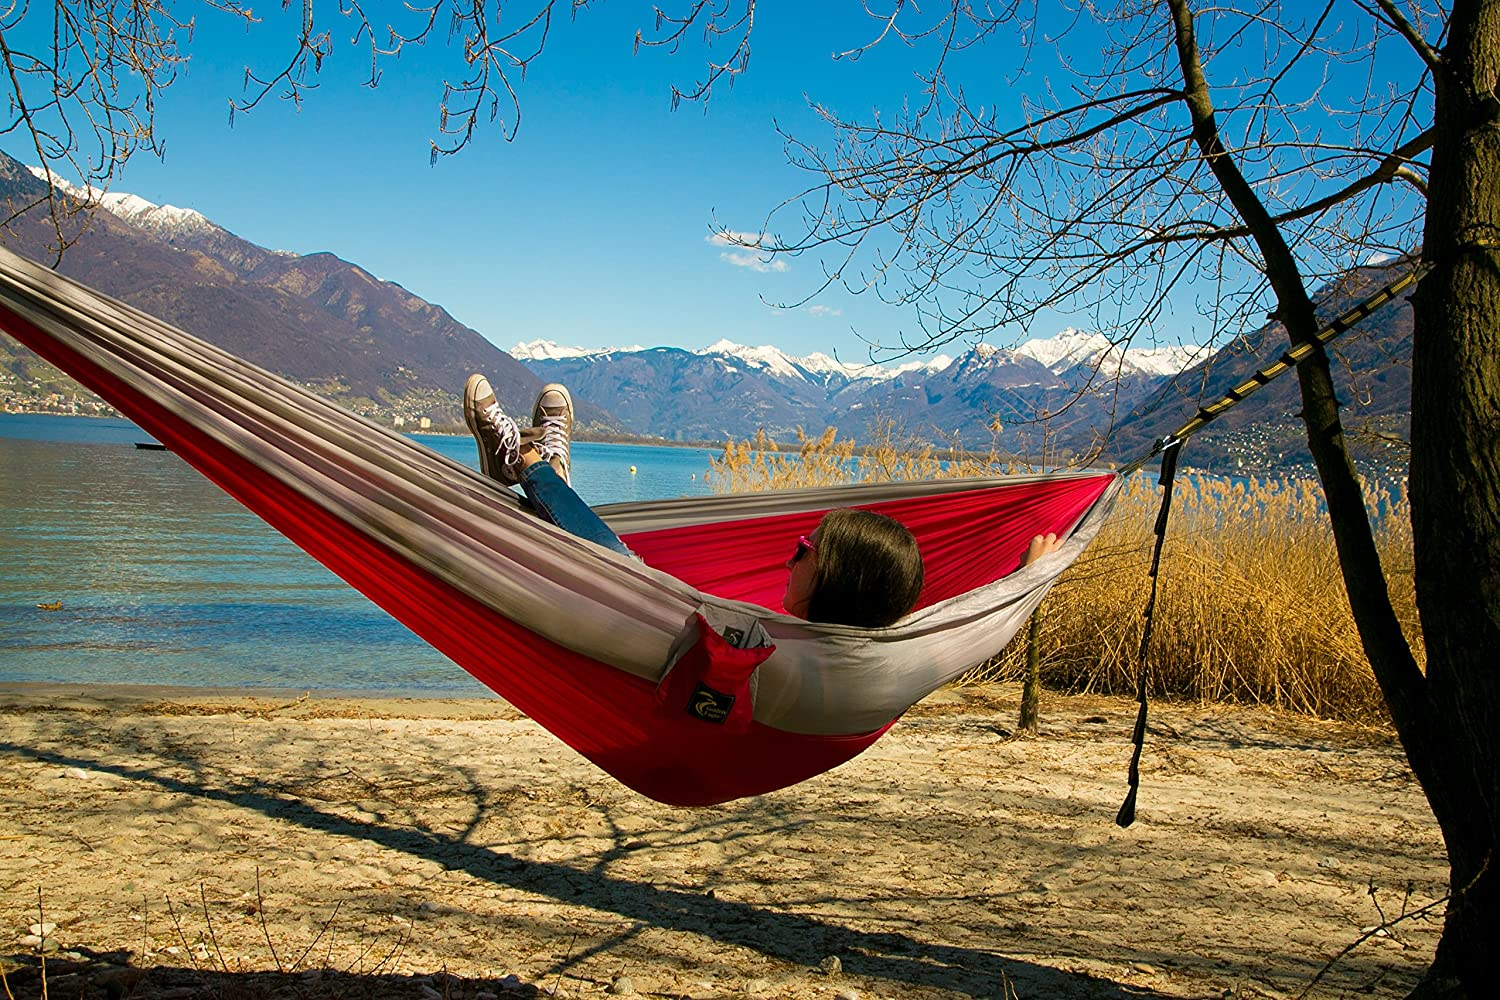 Golden Eagle SUMMER SALE - Double Camping Hammock Set - Incl. 2 carabiners and 2 ropes - 118 x 78 in - 600 lbs load Lightweight Parachute Nylon 210T Travel Hammock. Great Gift.2 YEAR WARRANTY. Other